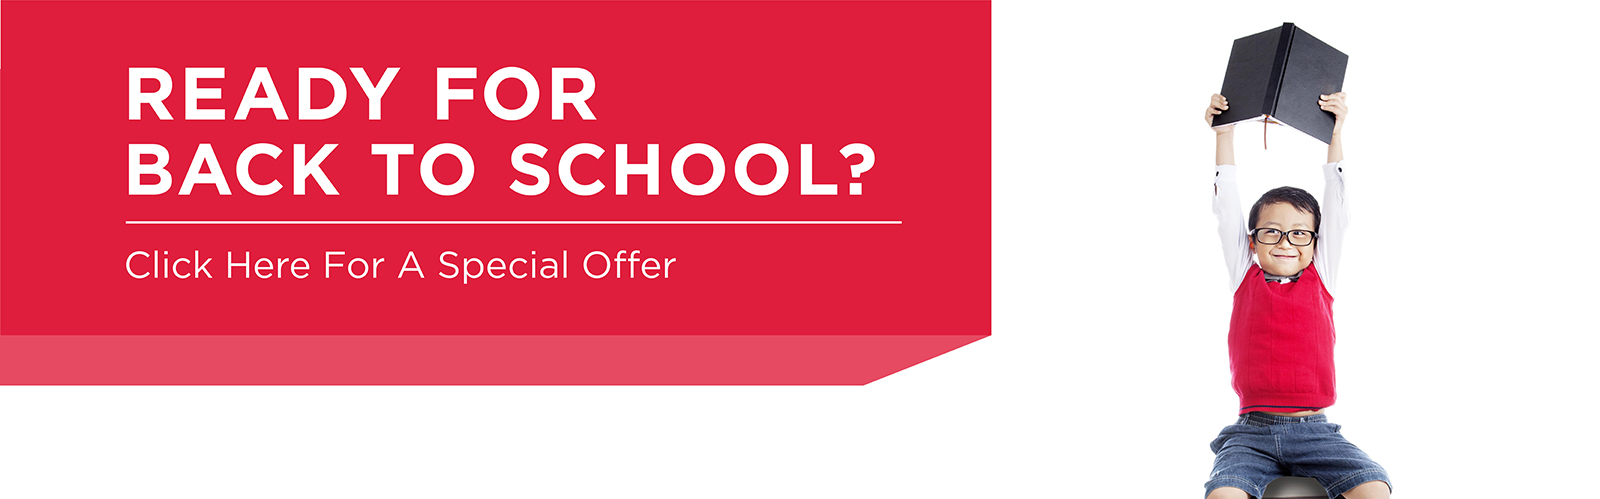 ready for back to school? click here for a special offer!